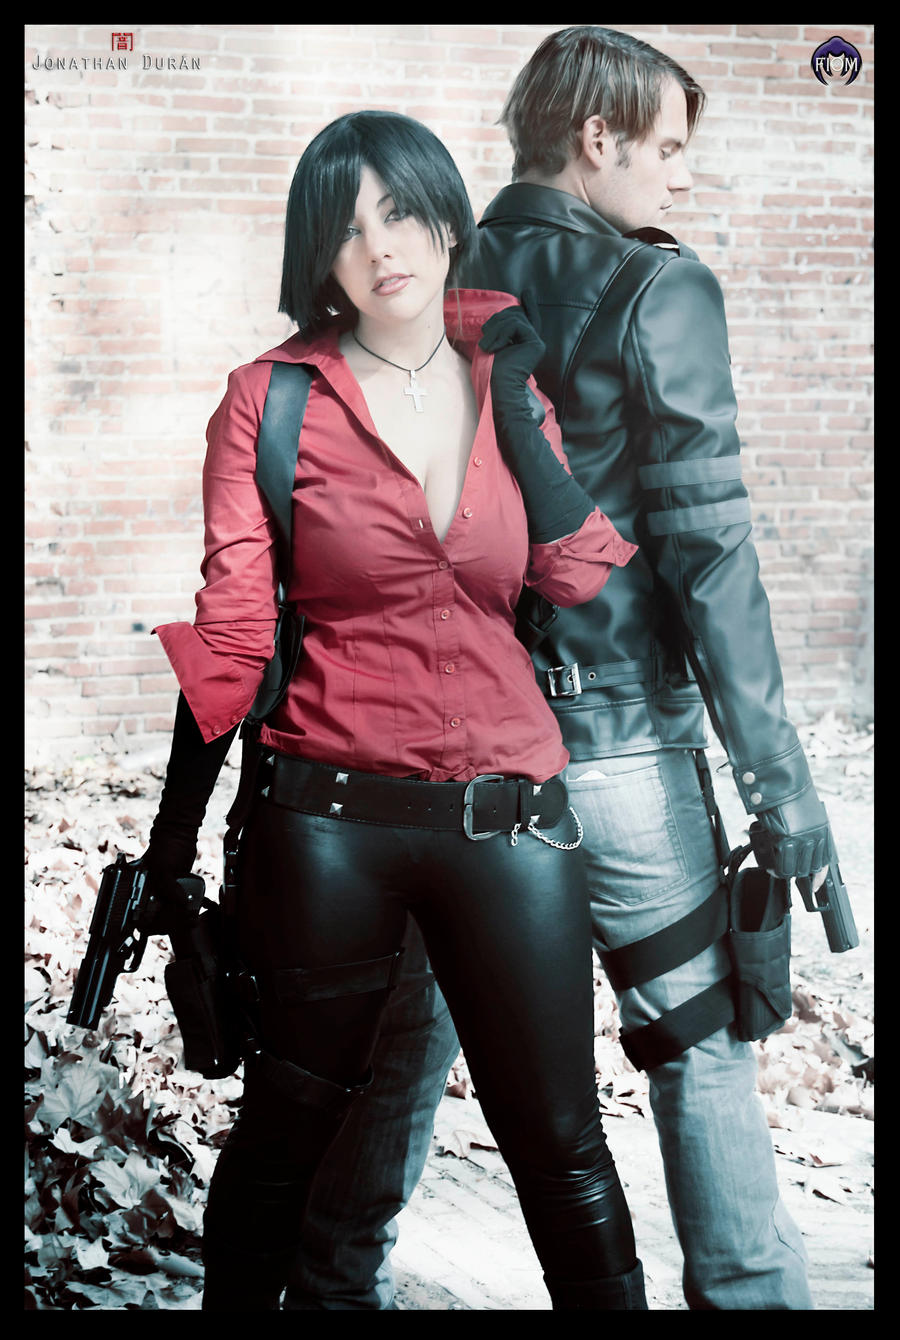 Leon and Ada resident evil 6 by JonathanDuran